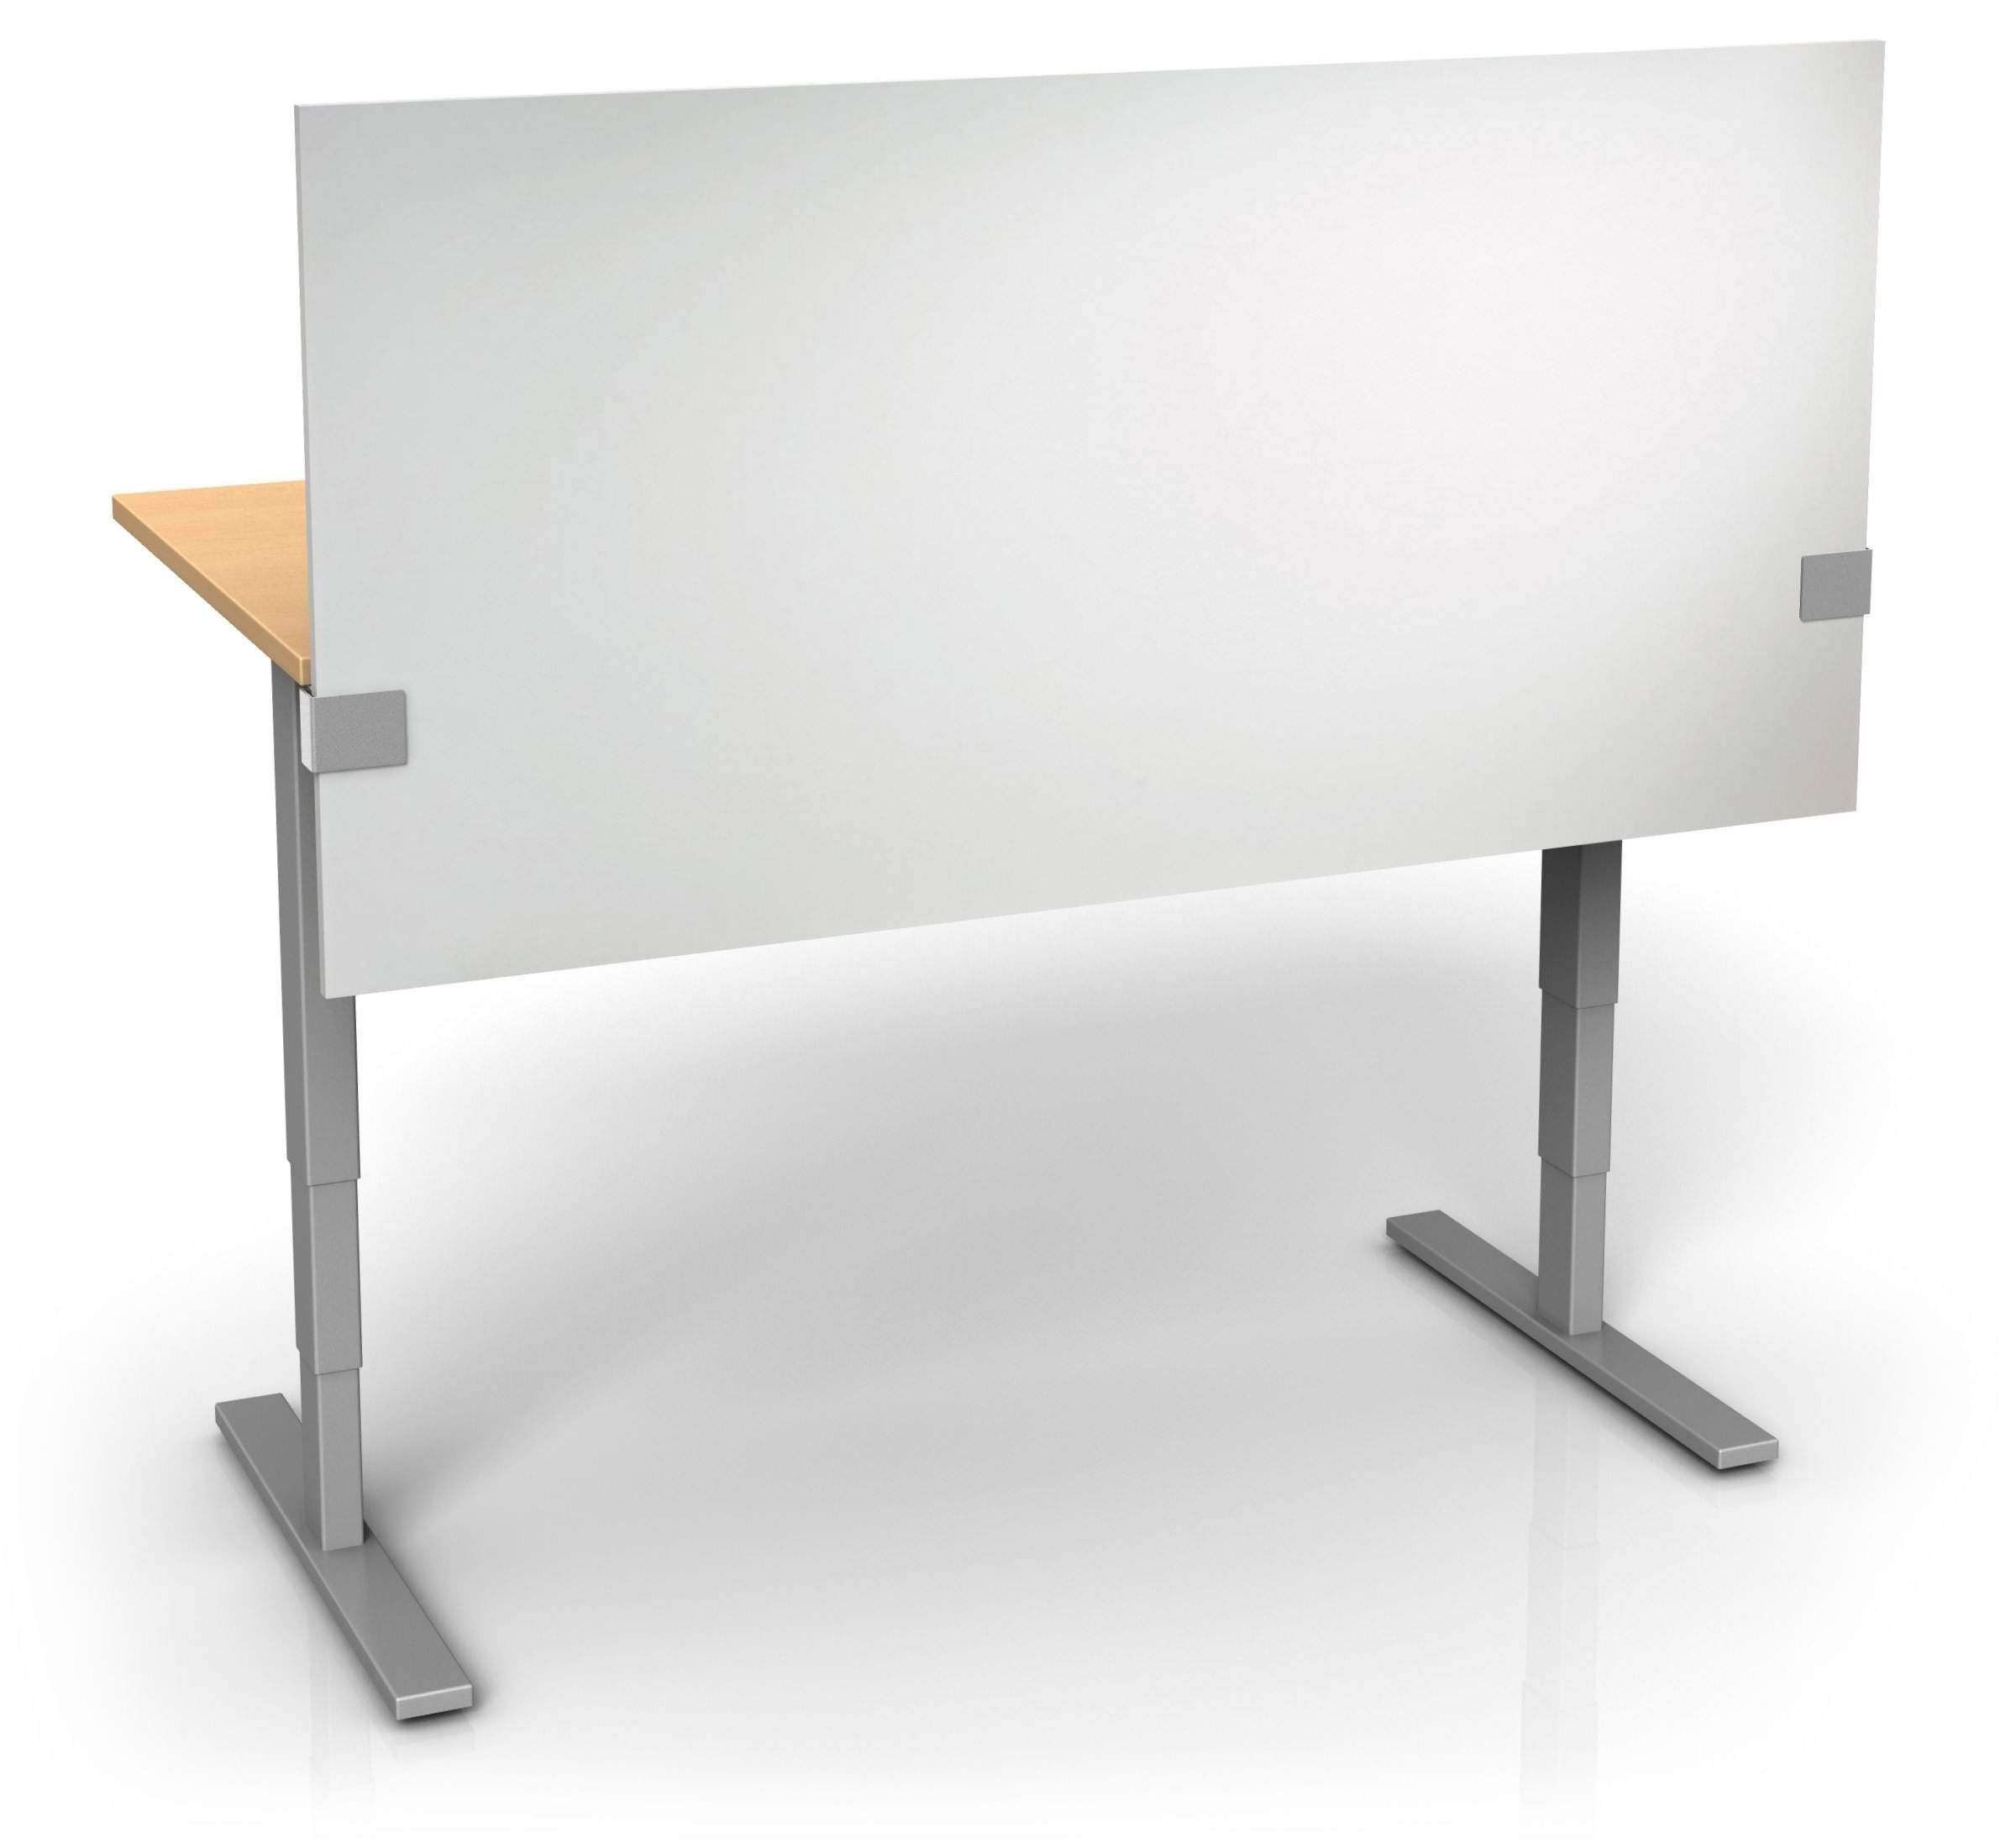 UPTOWN PANEL - WHITEBOARD HEIGHT ADJUSTABLE DESK DIVIDER - Protect ...